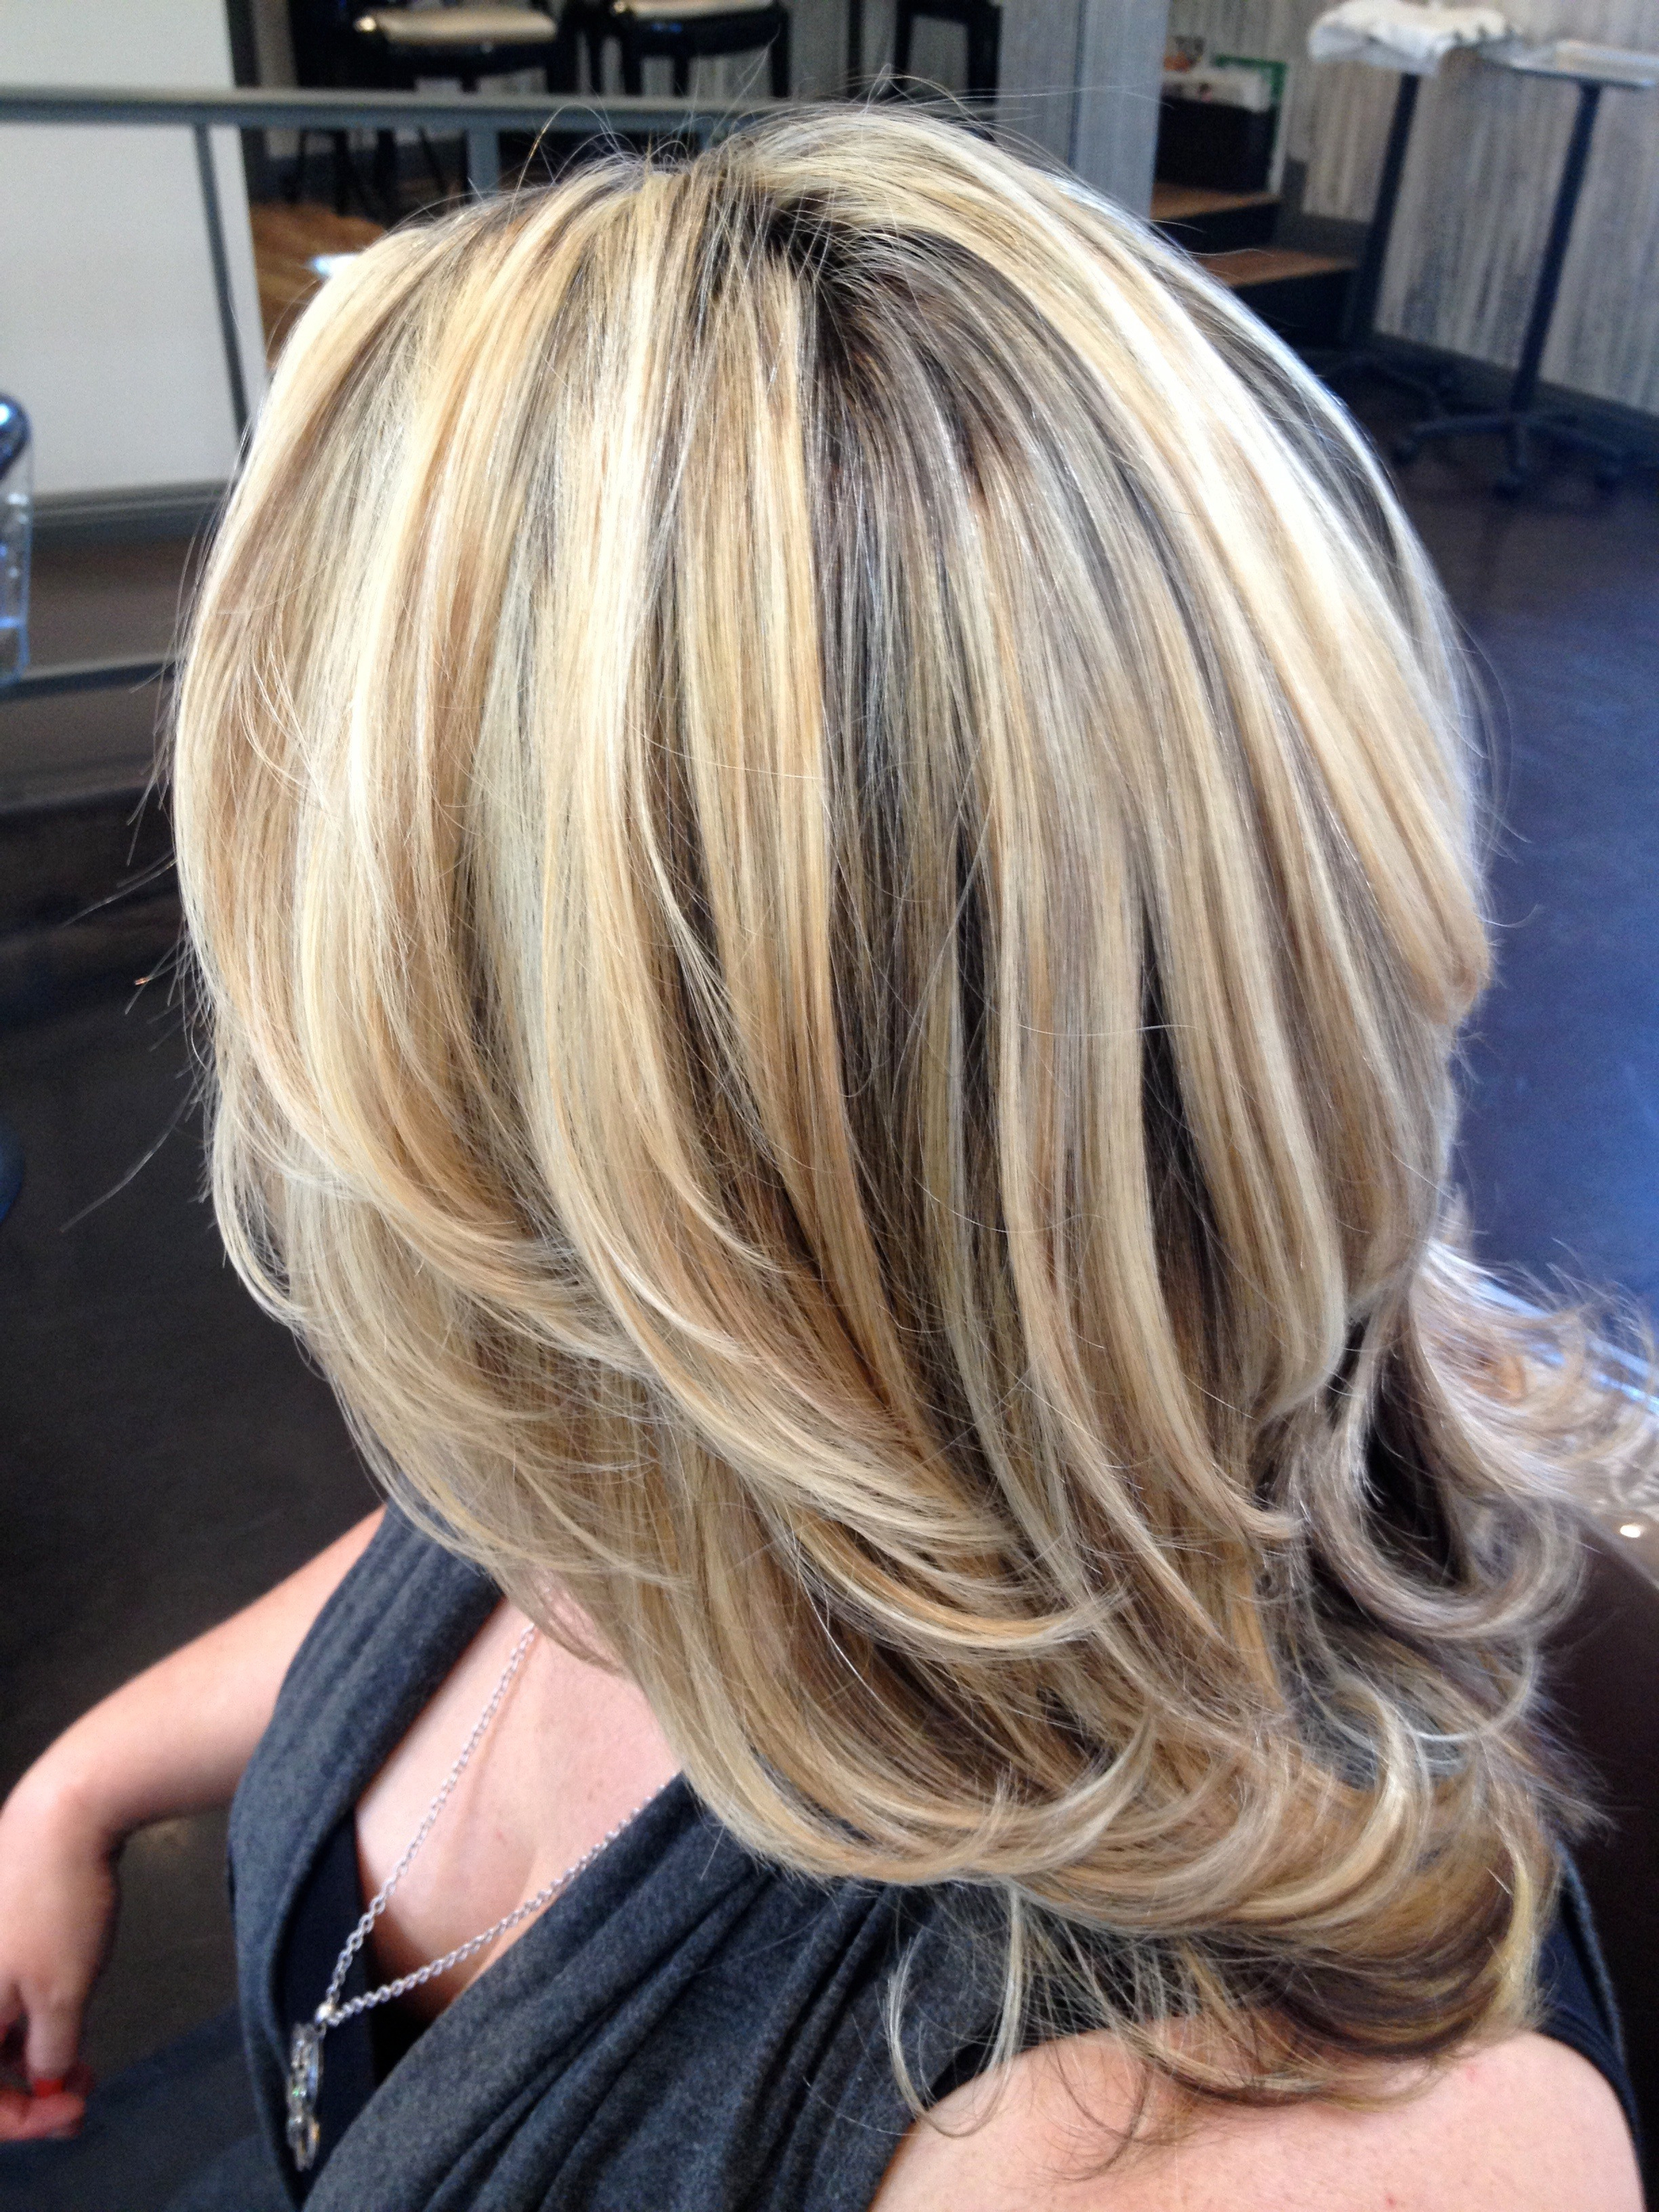 Well Liked Medium Hairstyles And Highlights With Regard To Medium Hairstyles Highlights Medium Hairstyles With Highlights And (Gallery 6 of 20)